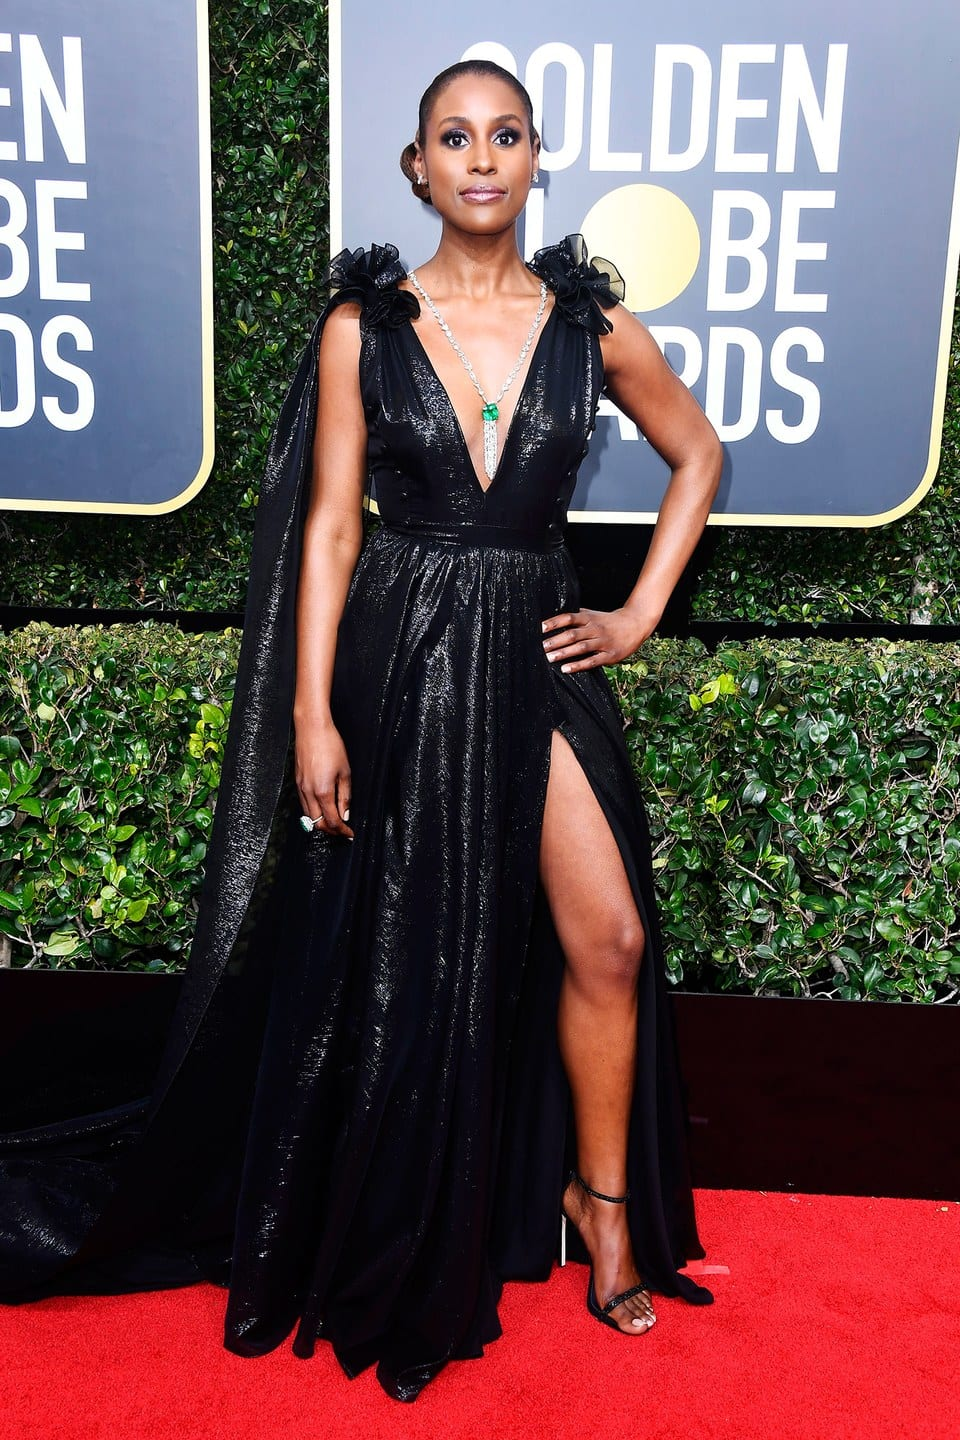 golden globes best dressed, golden globes 2018, issa rae, gowns